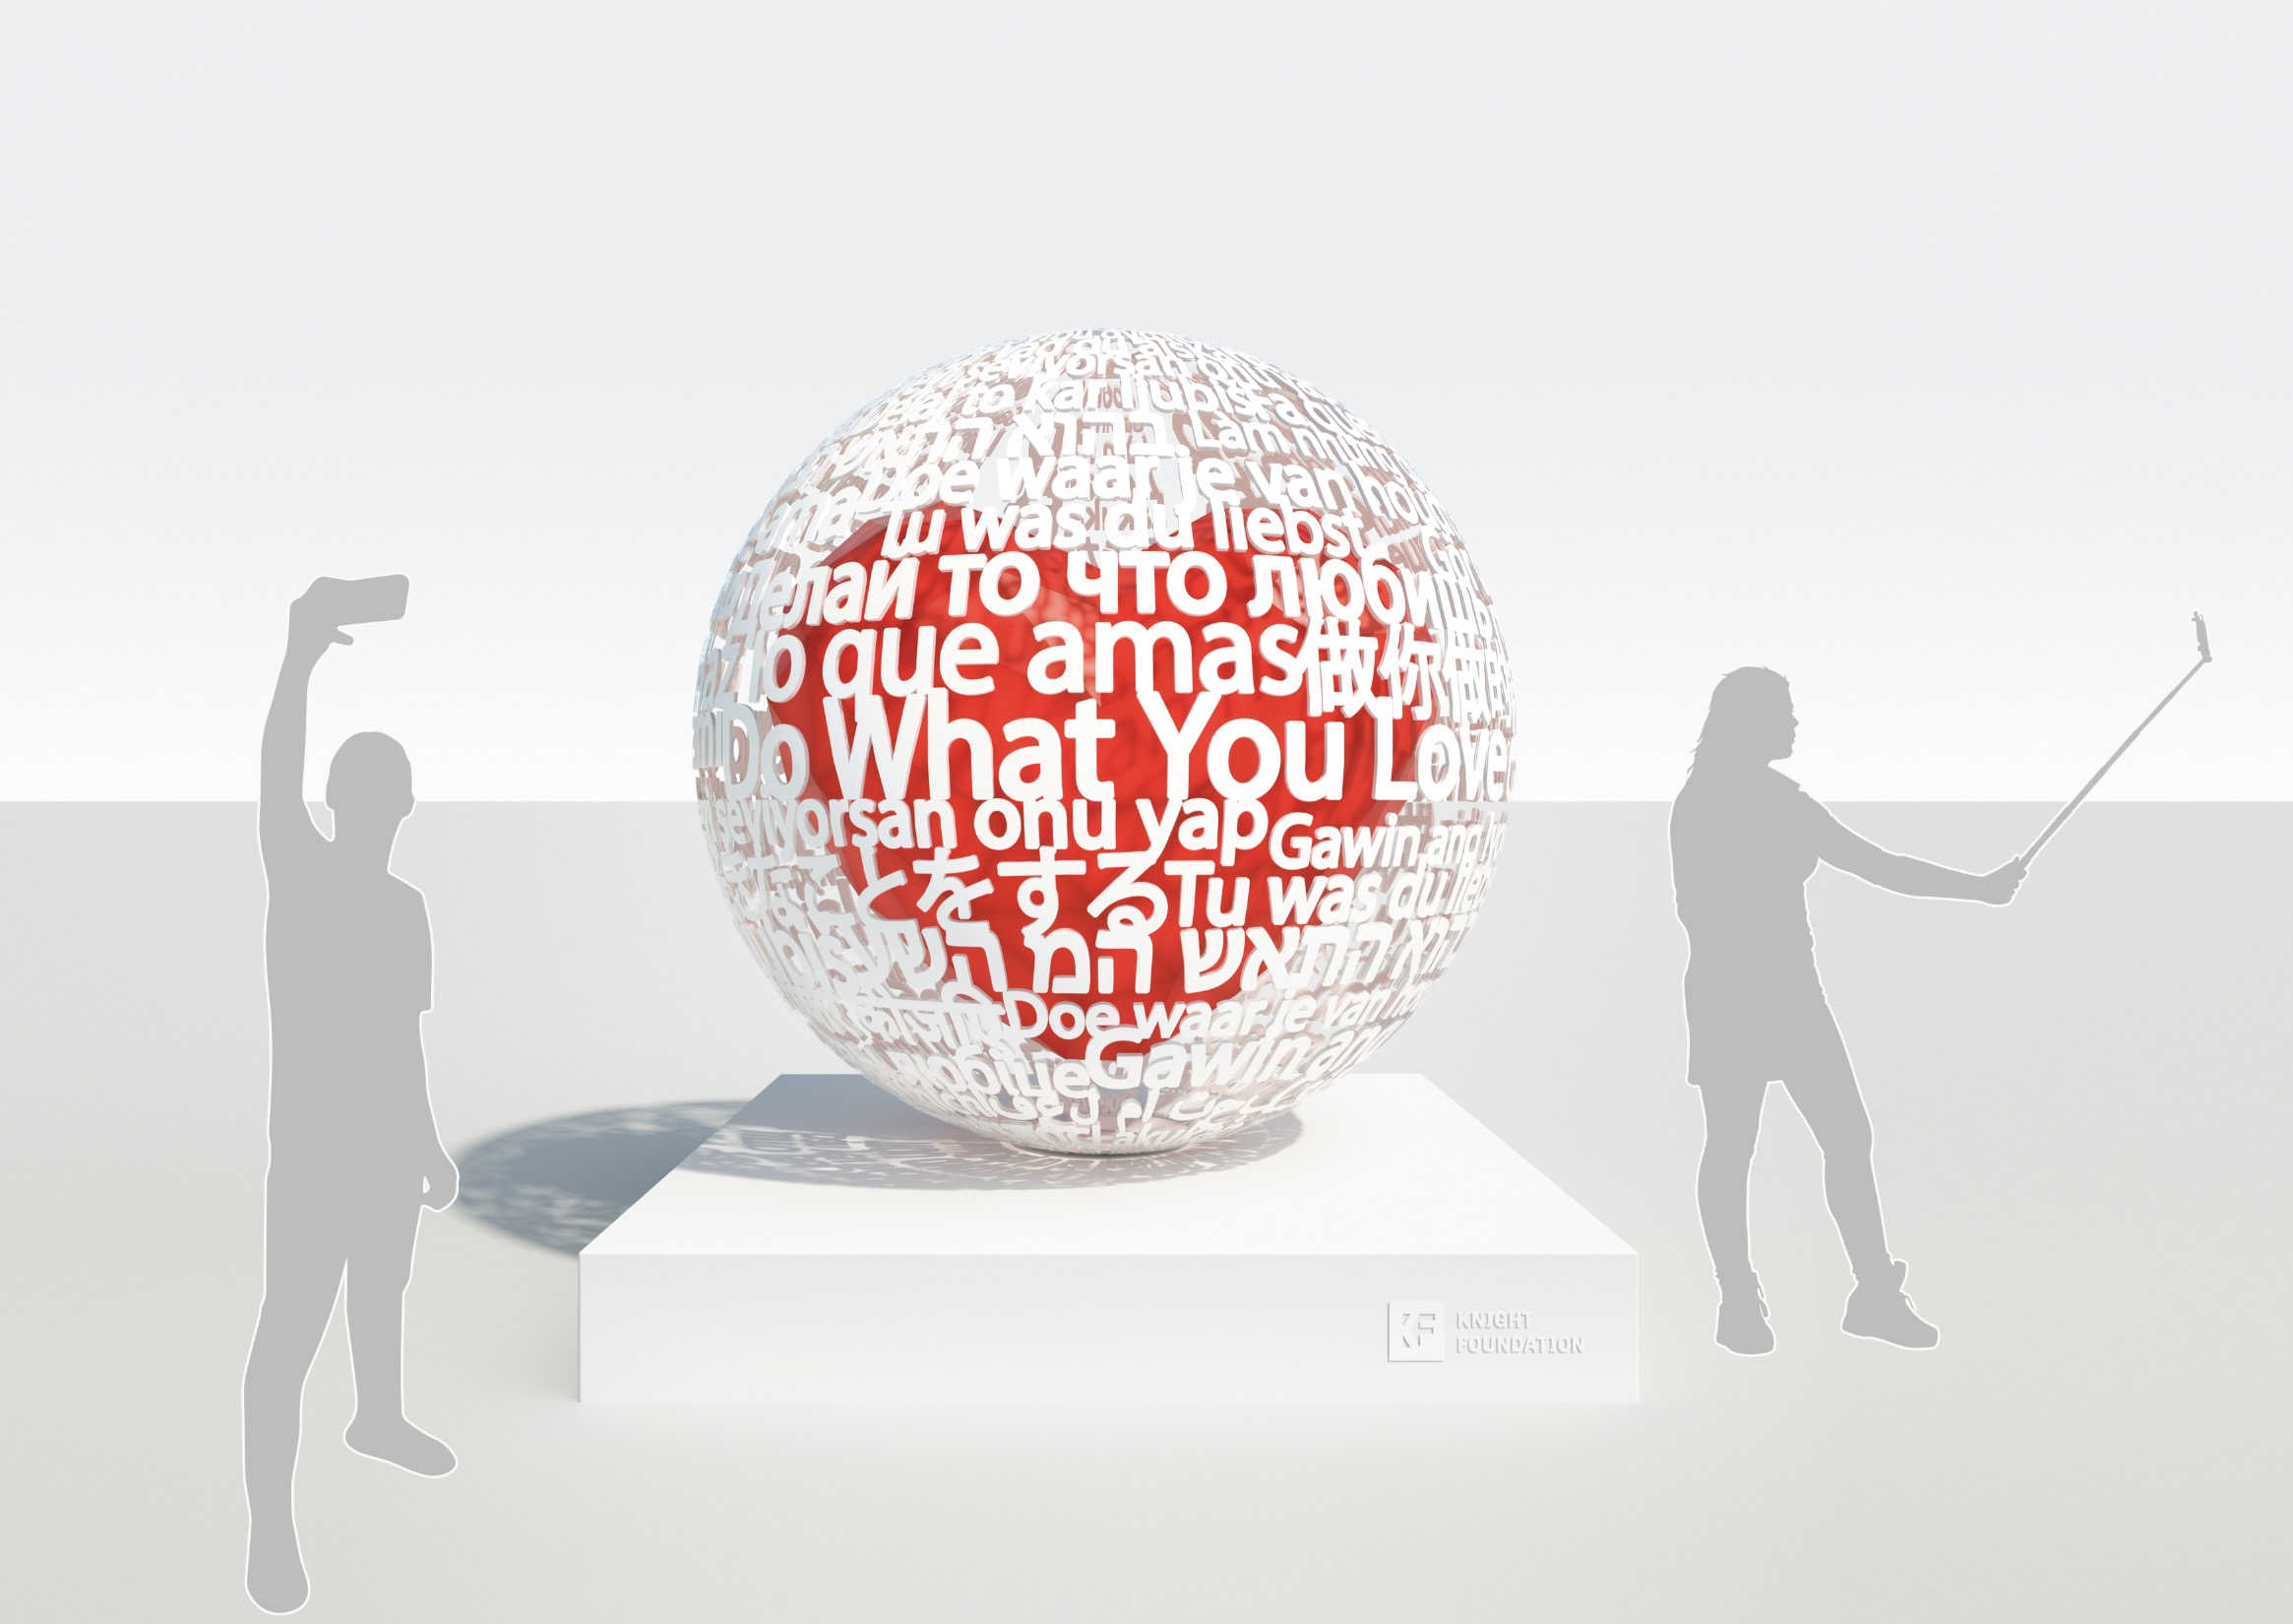 Do What You Love Sculpture for city of Miami by Sergey Gordienko